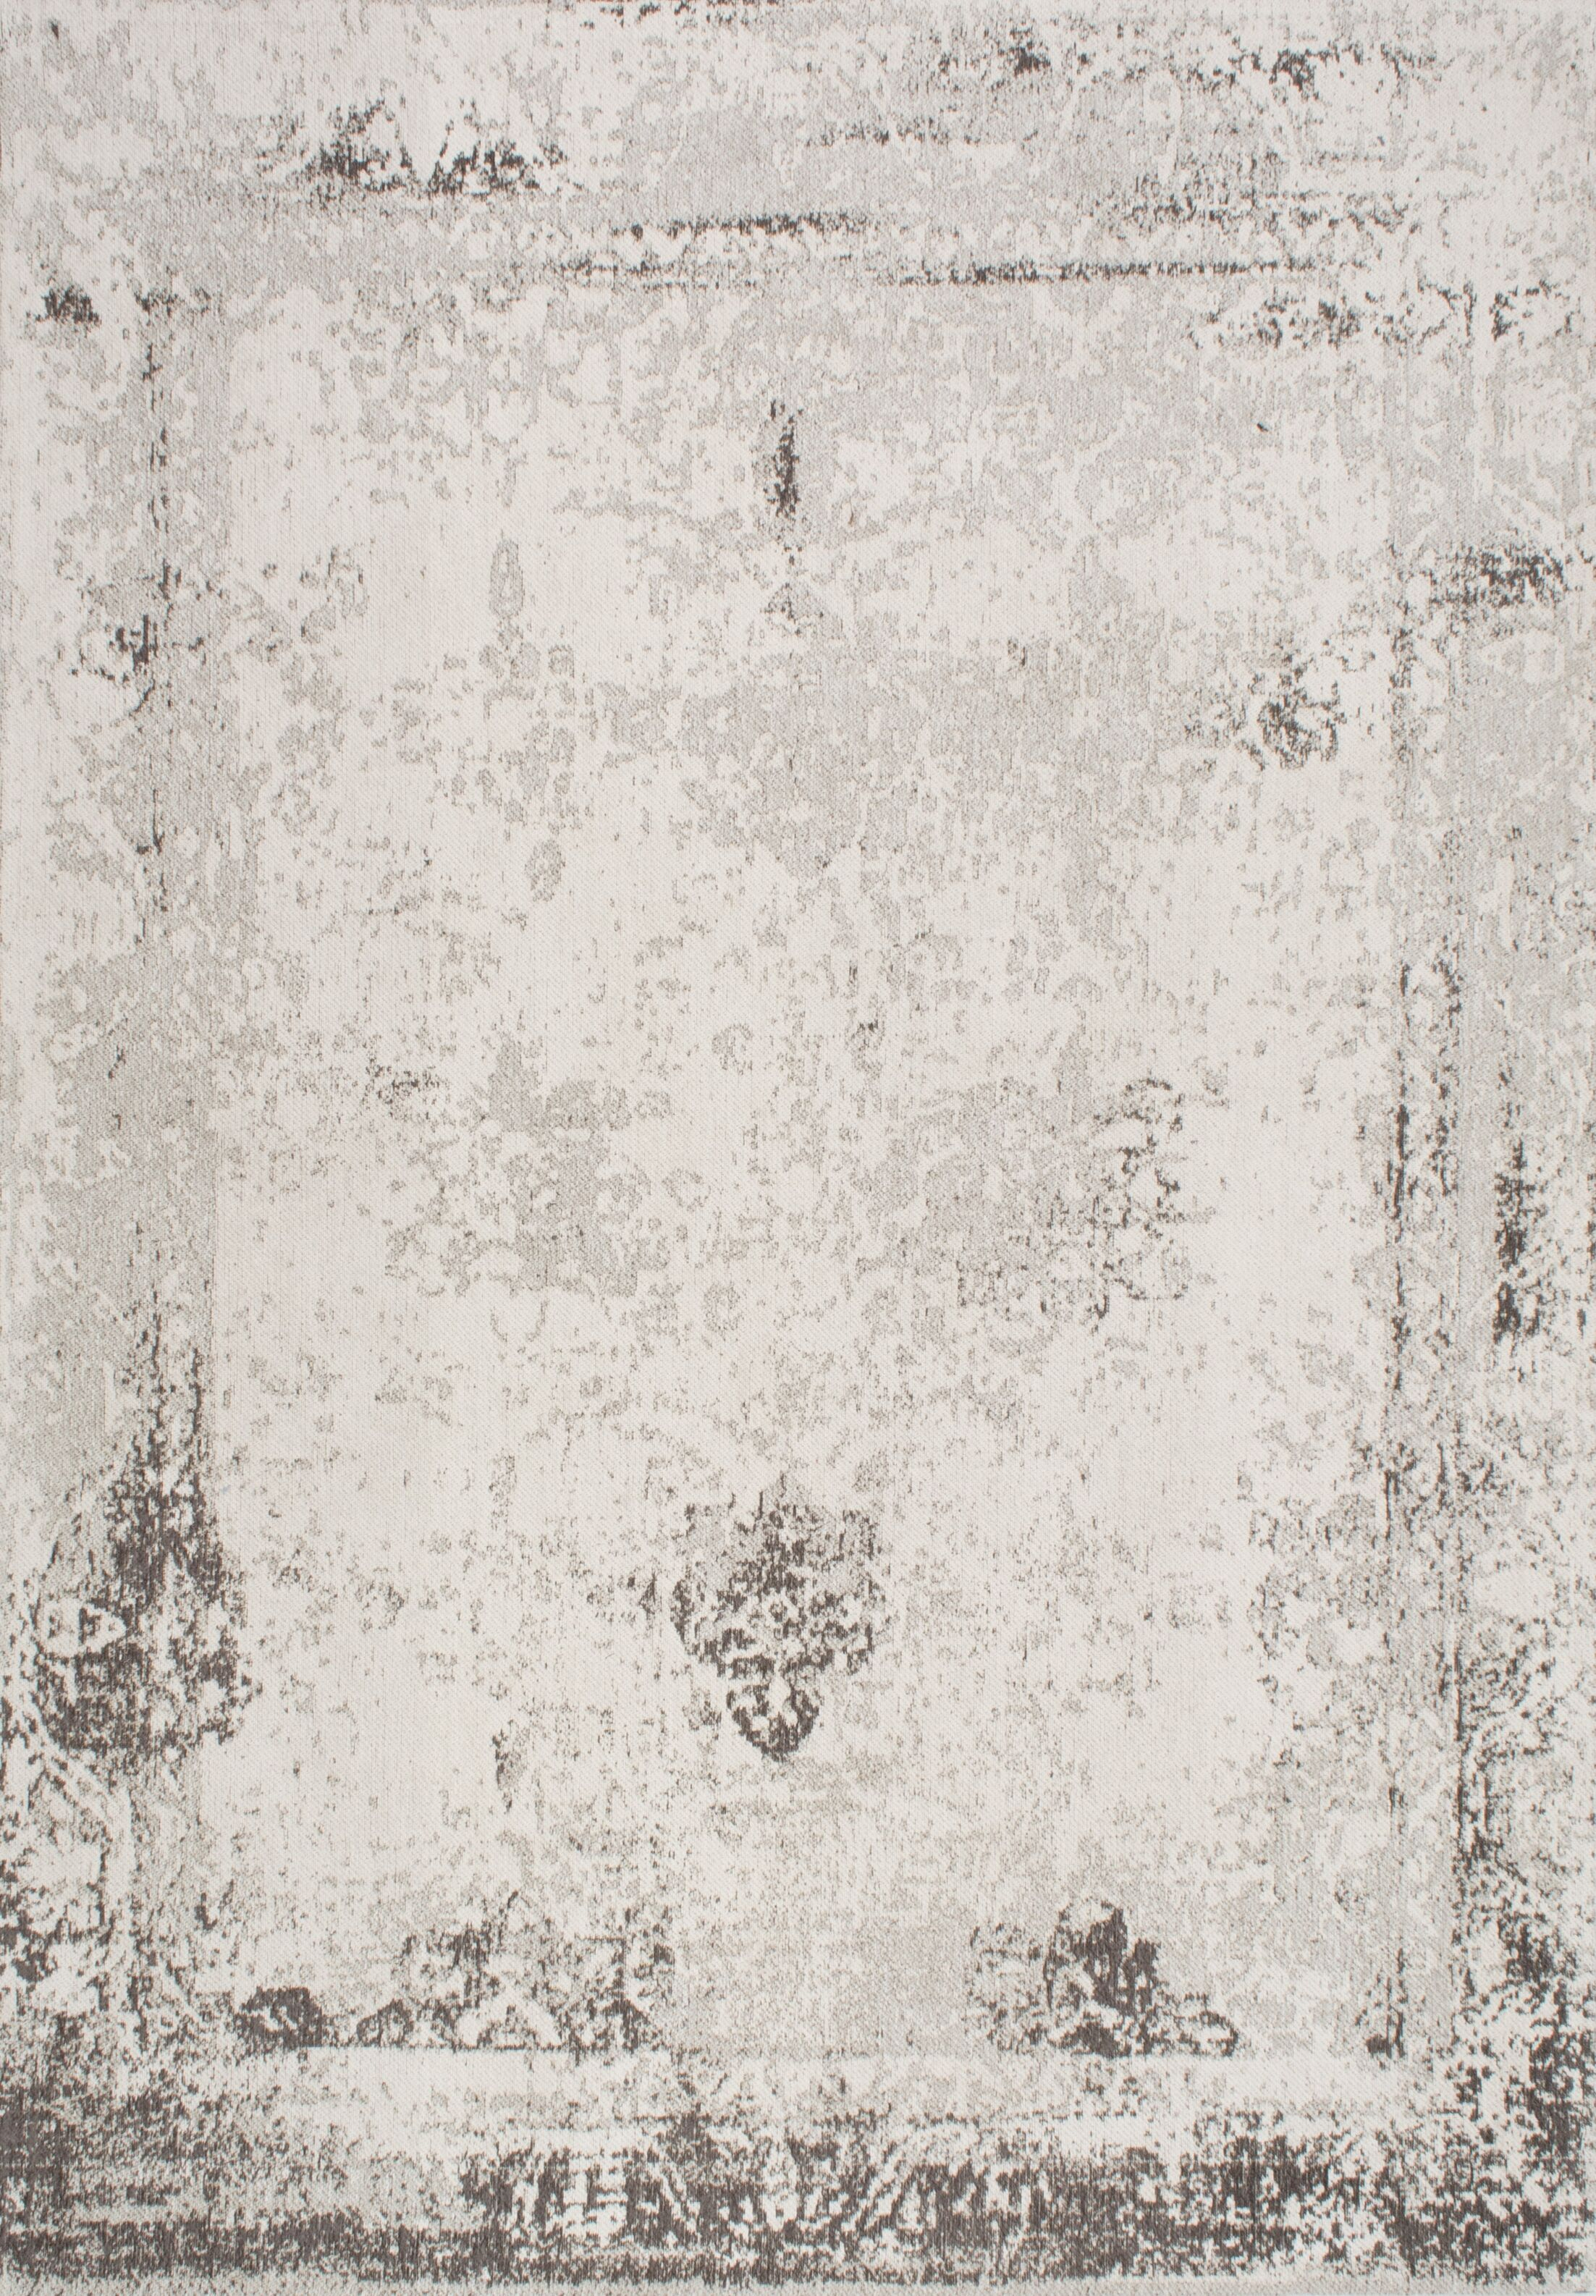 Chartres Handmade Grey Area Rug Rug Size: Rectangle 8'6